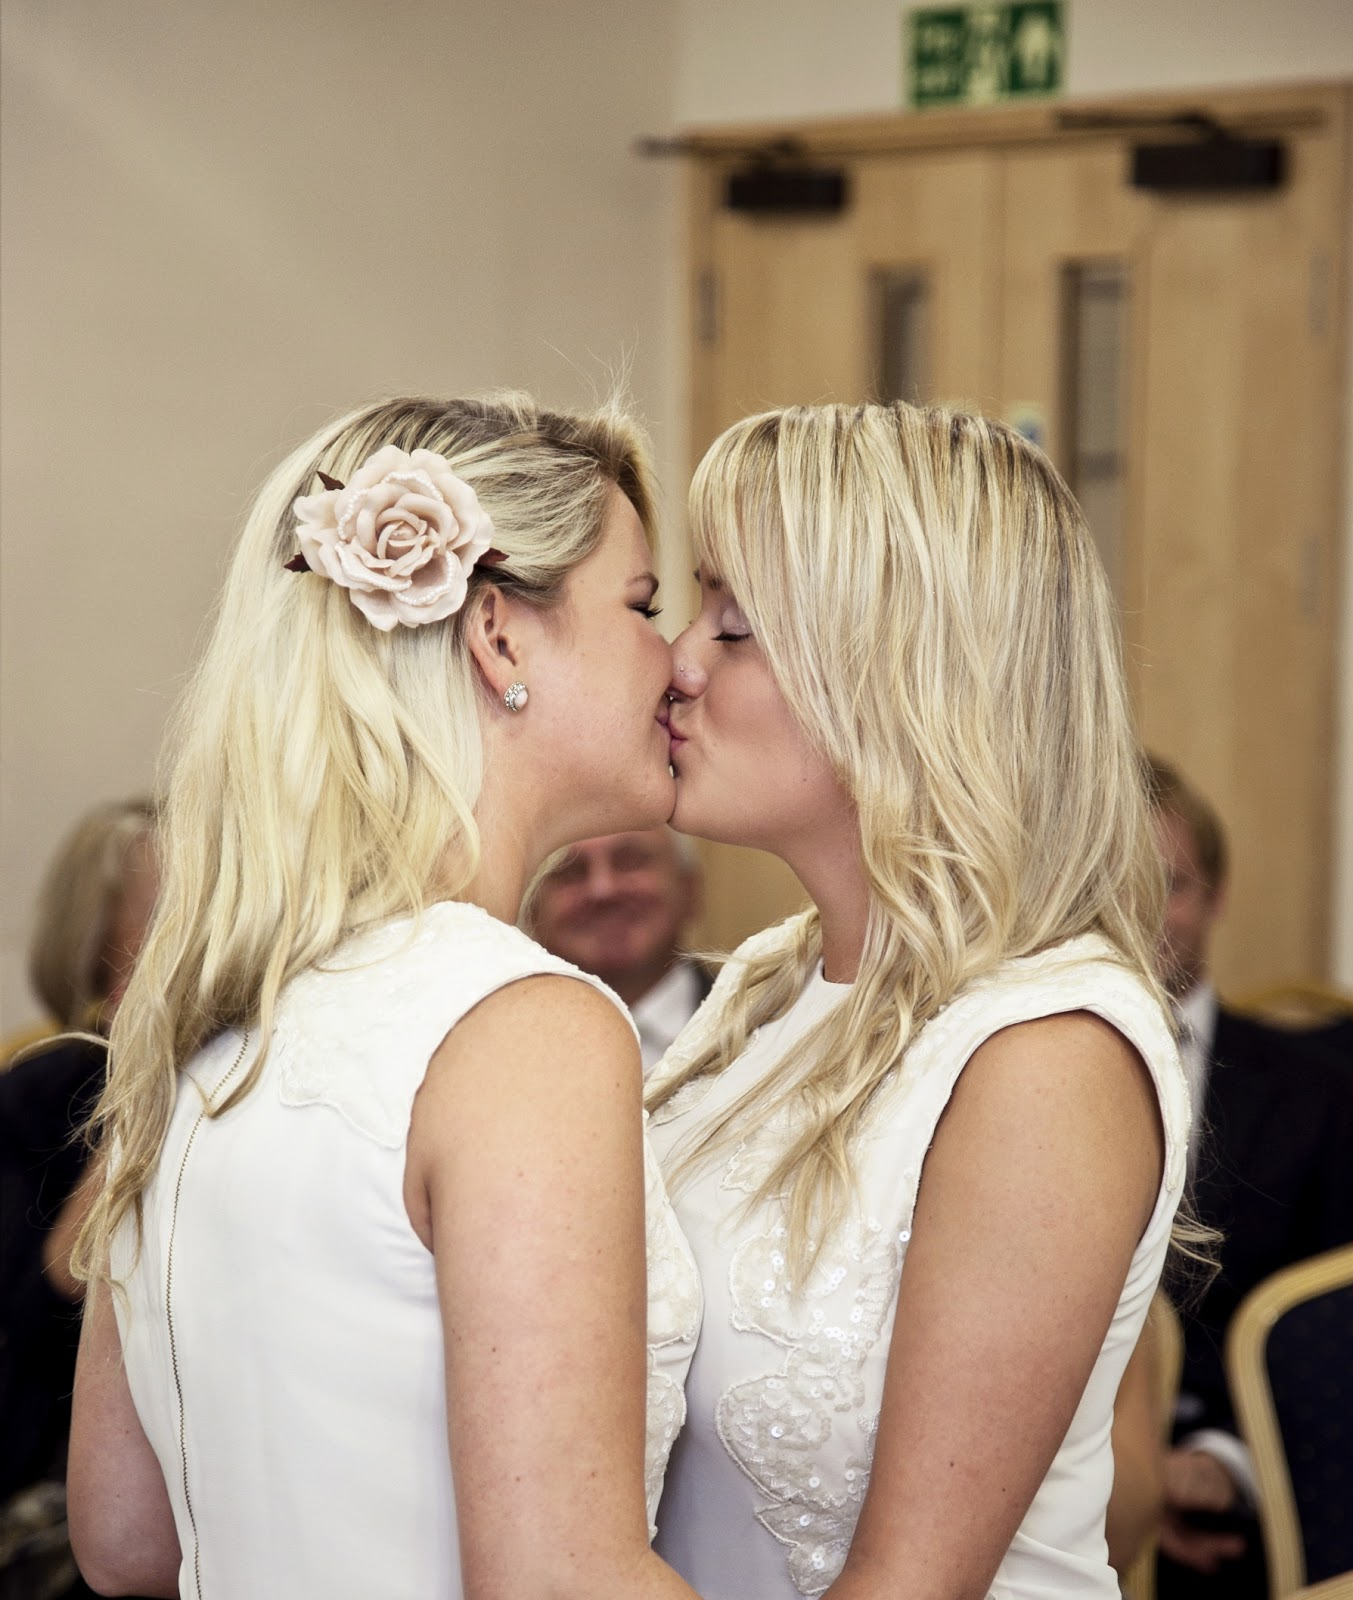 Kissing blonde girls